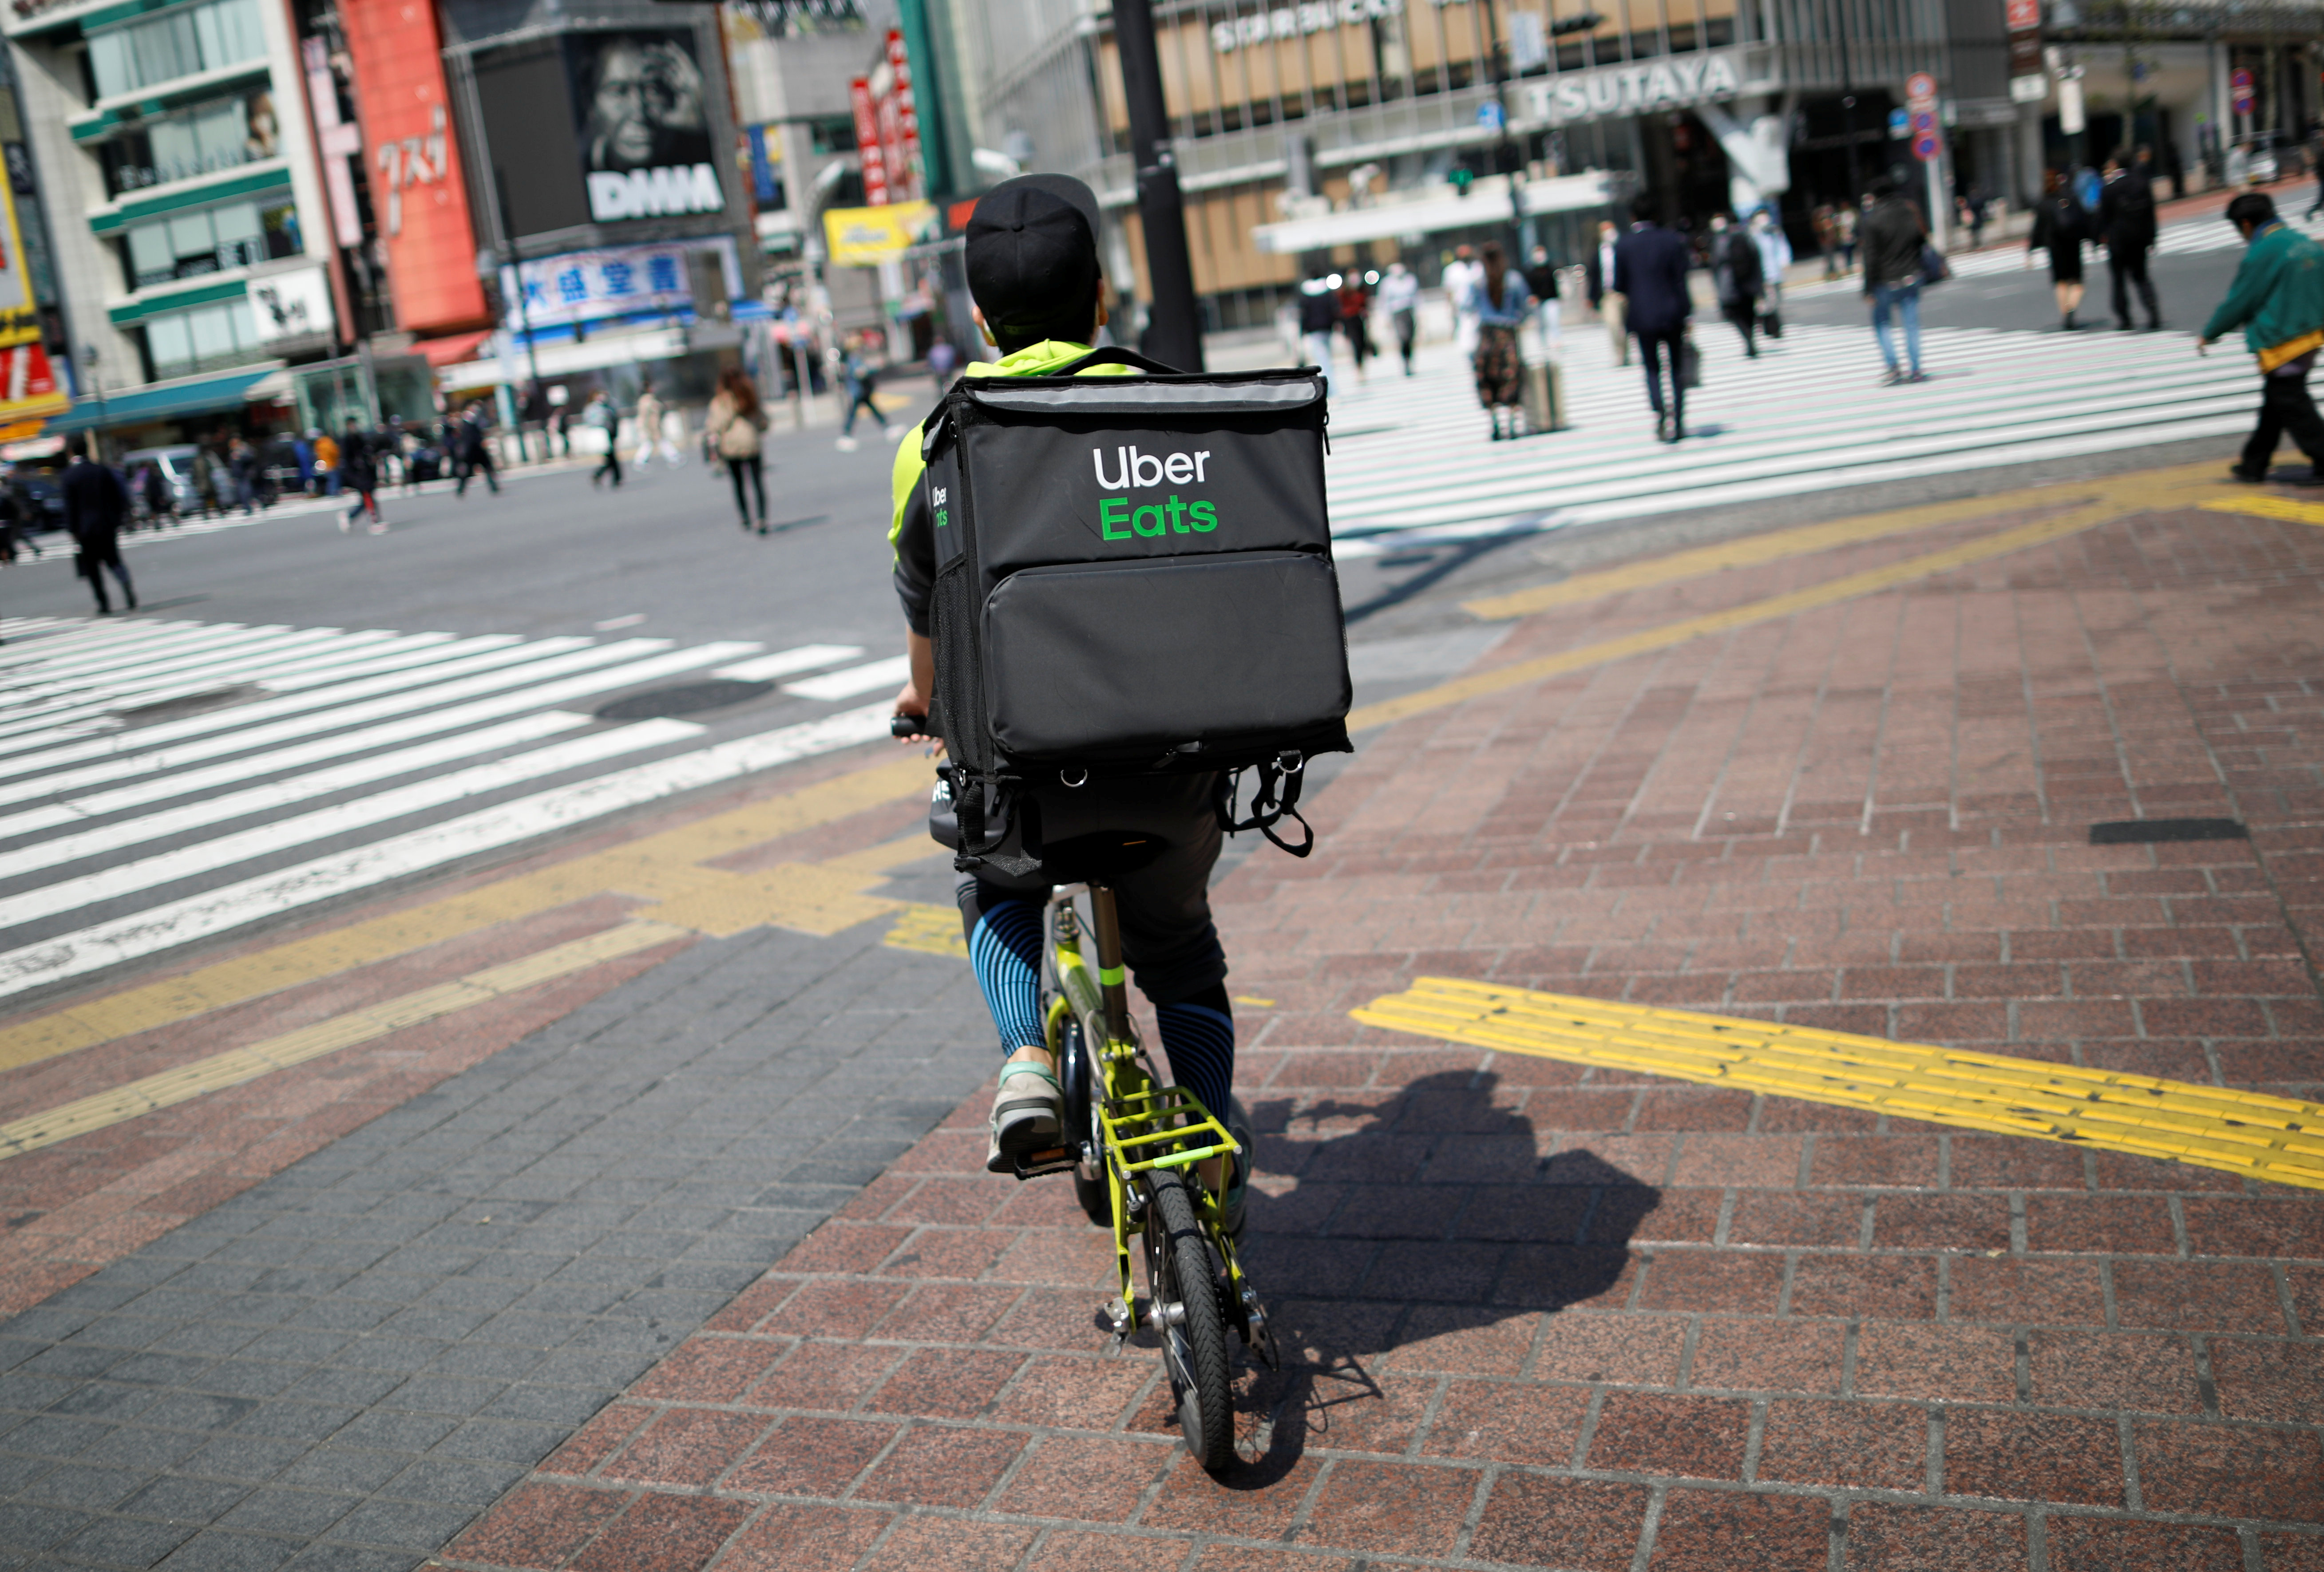 An Uber Eats delivery person rides a bicycle during an outbreak of the coronavirus disease (COVID-19), at Shibuya shopping and amusement district in Tokyo, Japan April 8, 2020.  REUTERS/Issei Kato/Files